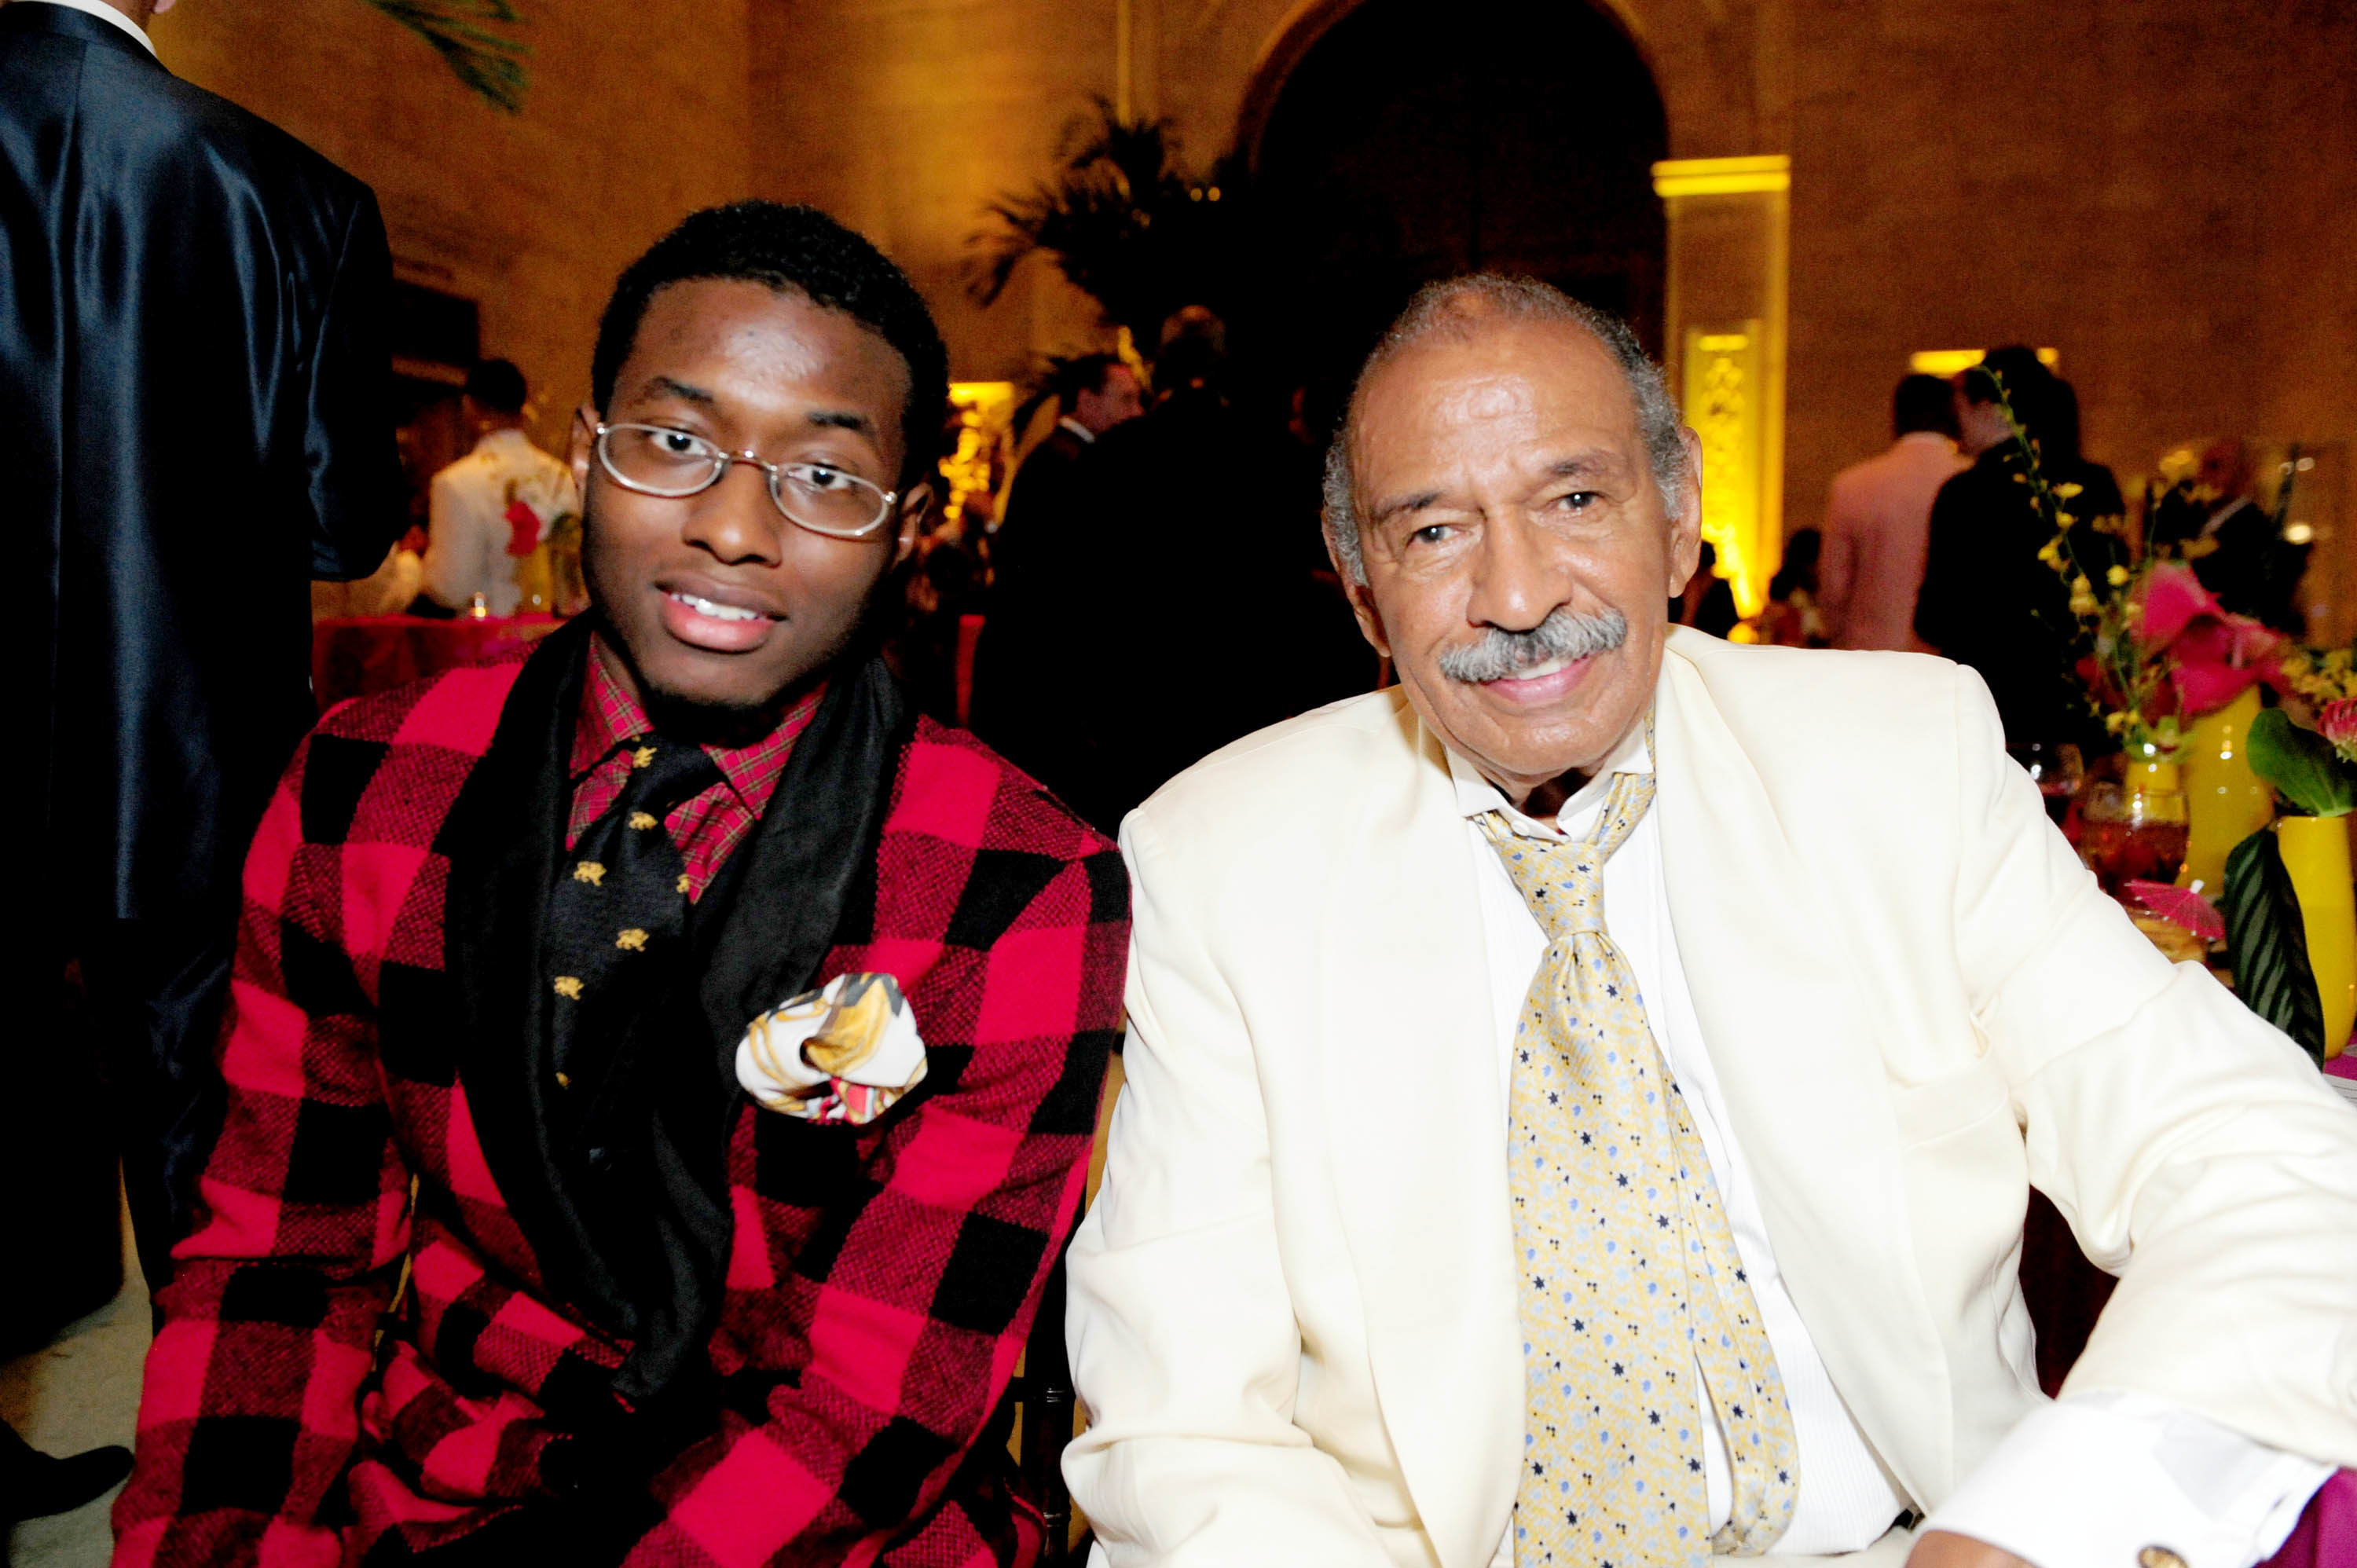 In this July 16, 2011 photo, John Conyers, III poses with his father Rep. John Conyers, D-Mich., in Detroit. John Conyers' resignation from the U.S. House amid sexual harassment allegations unlocks the seat he's held for more than a half-century. The 88-year-old endorsed his son, political neophyte John Conyers III. (Ricardo Thomas /Detroit News via AP)